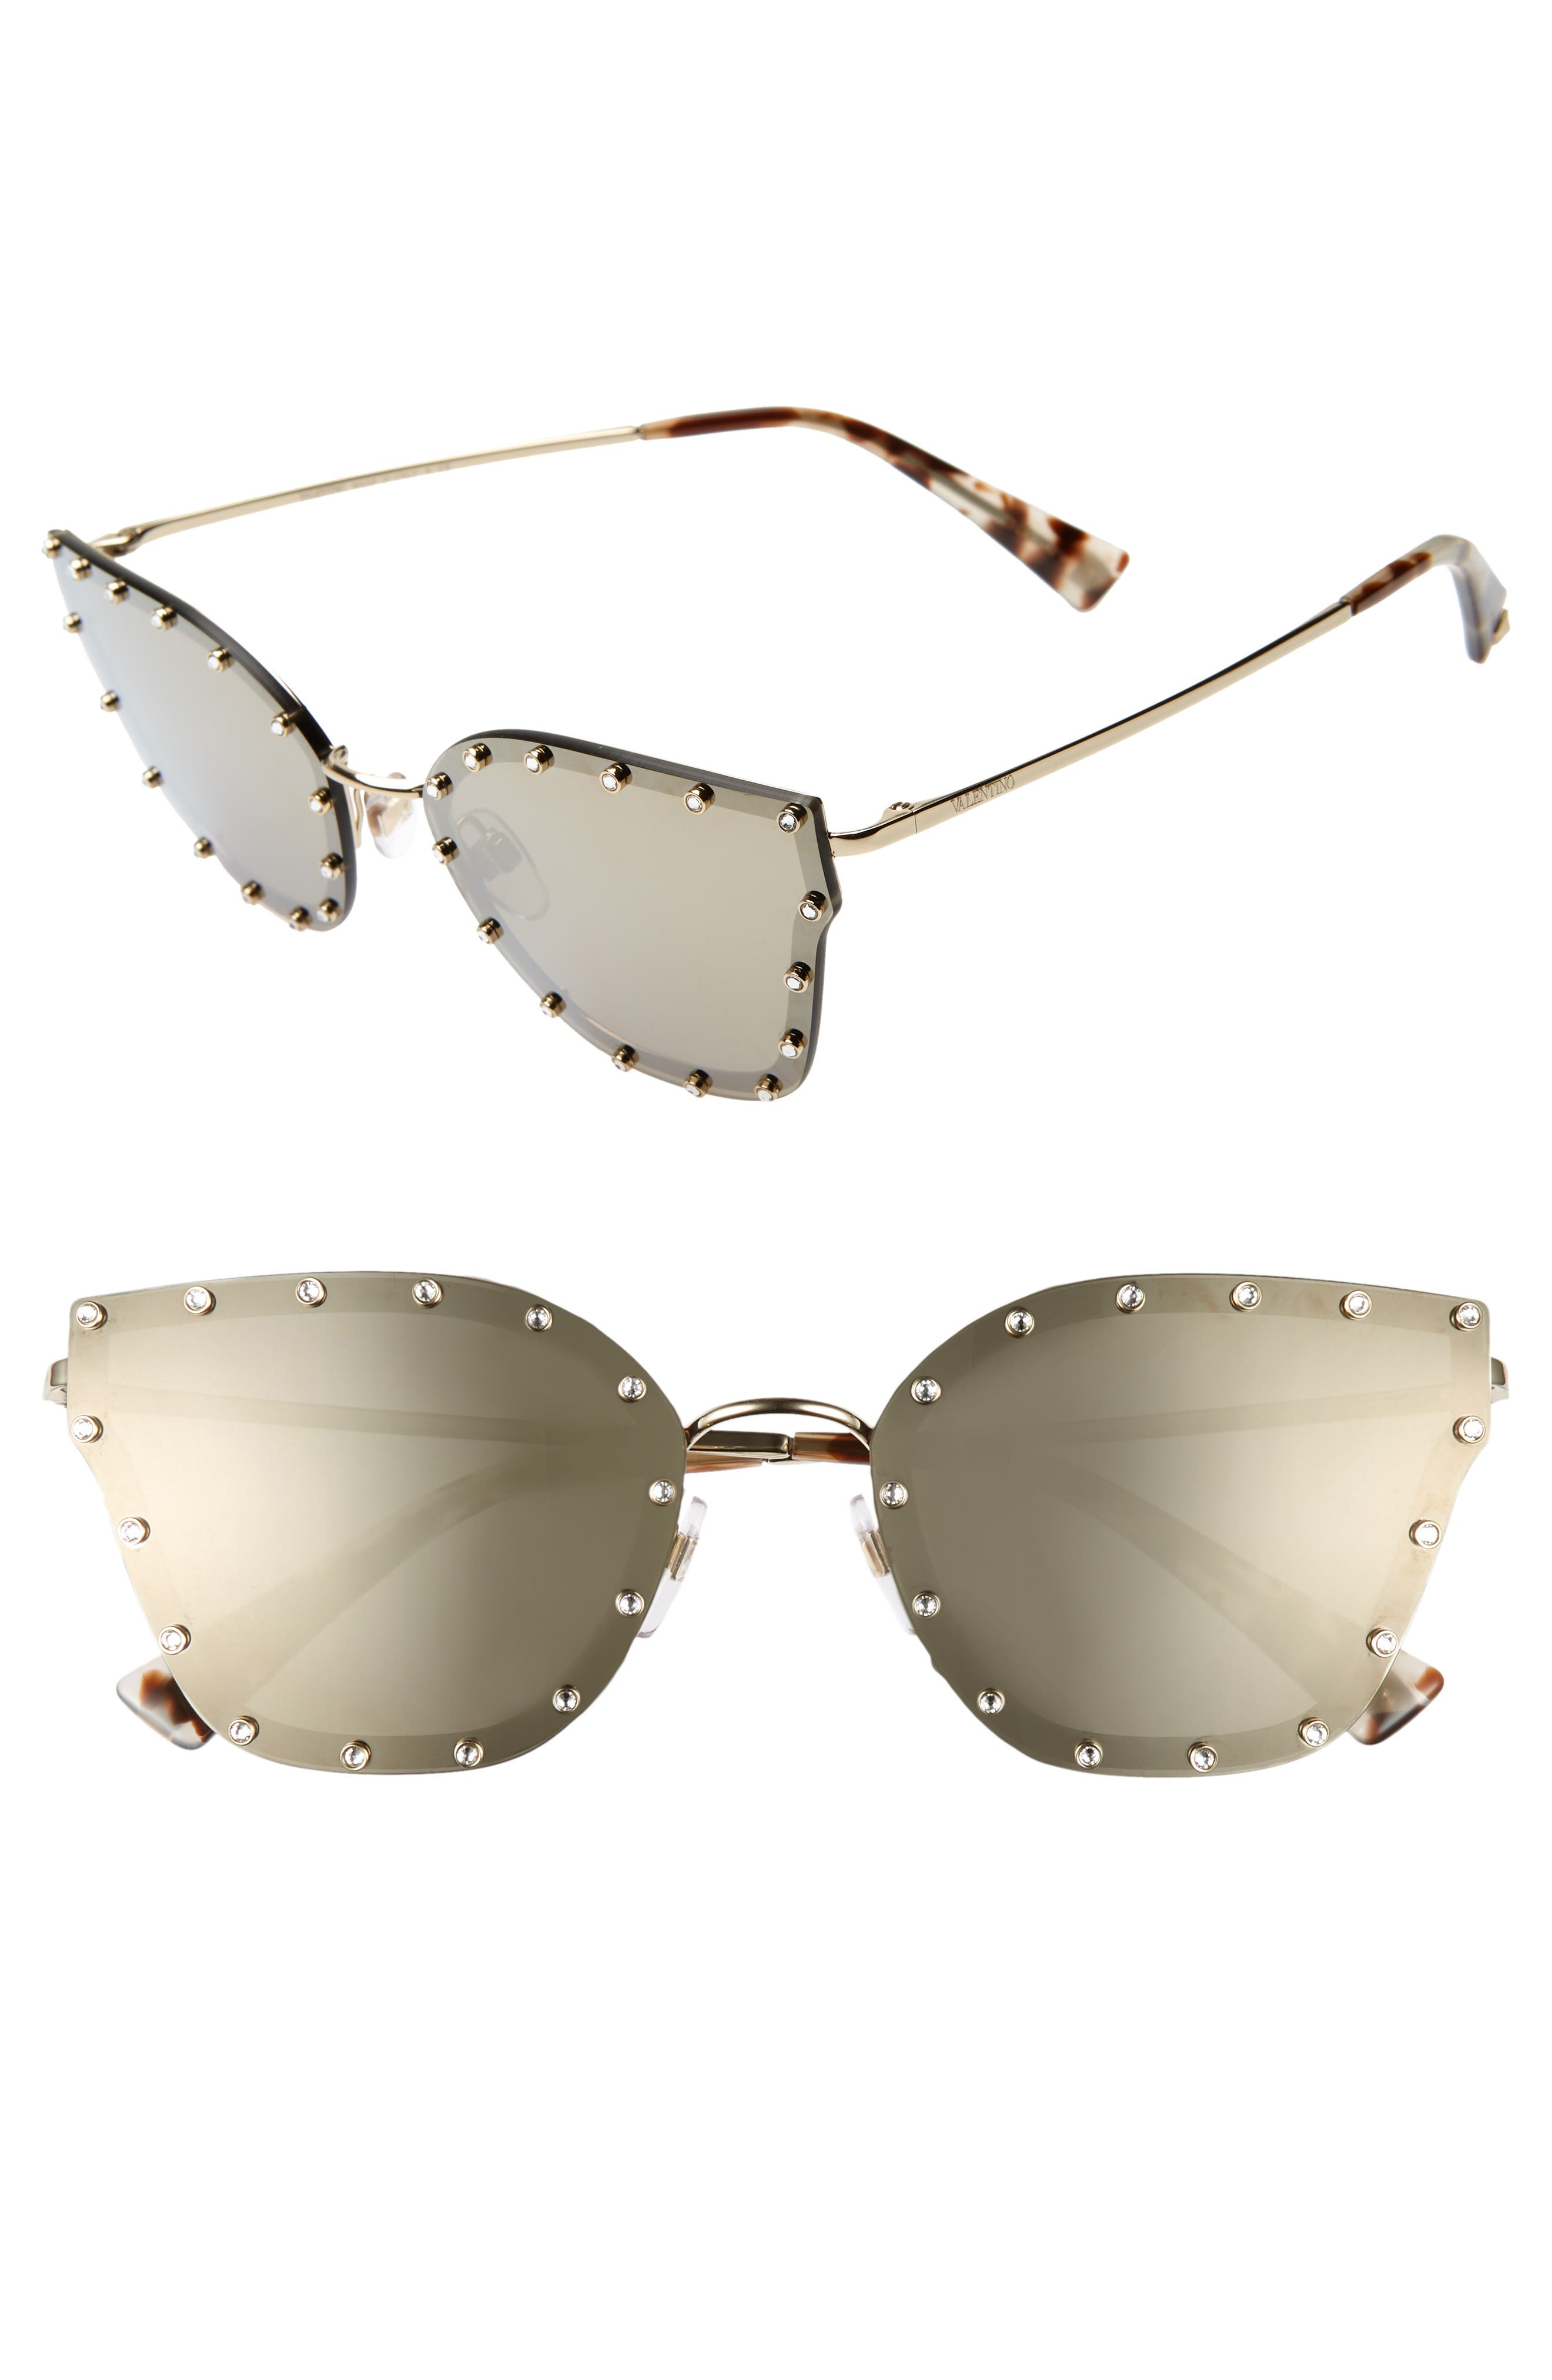 VALENTINO,                             59mm Cat Eye Sunglasses,                             Main thumbnail 1, color,                             LIGHT GOLD/ GOLD